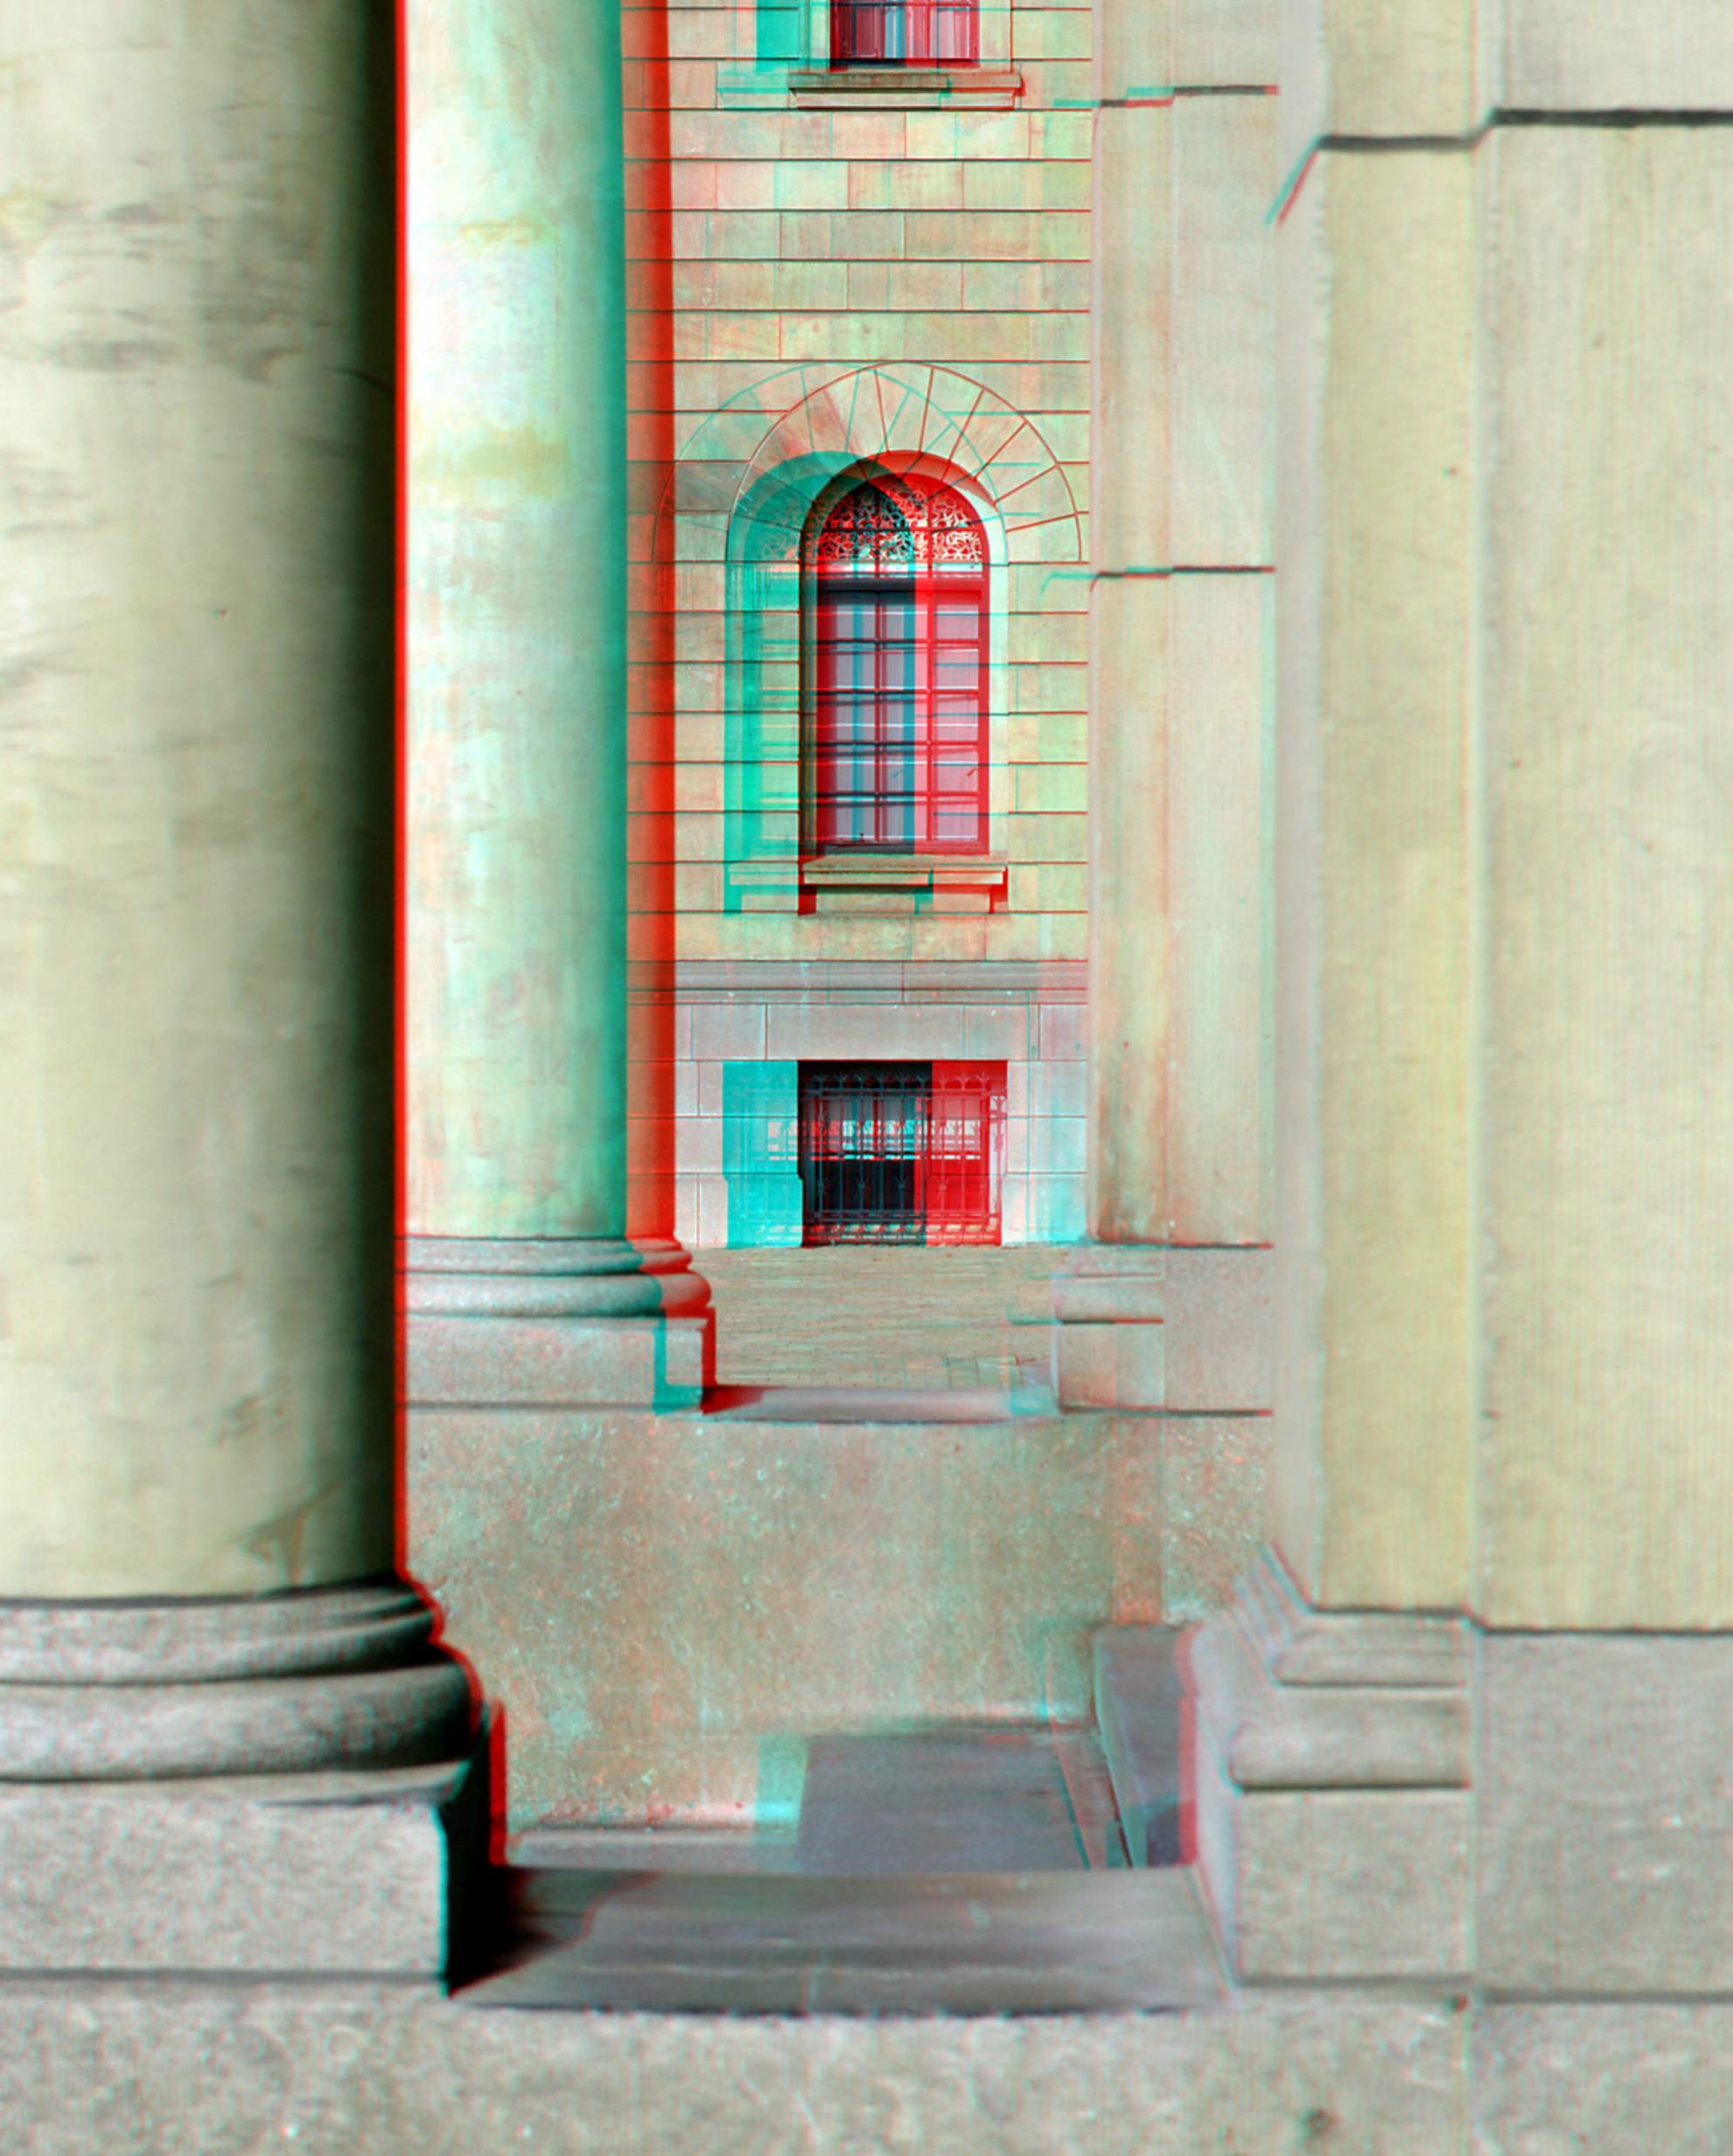 Stadhuis Coolsingel Rotterdam 3D anaglyph - Stadhuis Coolsingel Rotterdam 3D anaglyph anaglyph stereo red/cyan D7000 18-200 cha-cha - foto door hoppenbrouwers op 04-03-2021 - deze foto bevat: rotterdam, 3d, stadhuis, anaglyph, coolsingel, stadhuis rotterdam 3d